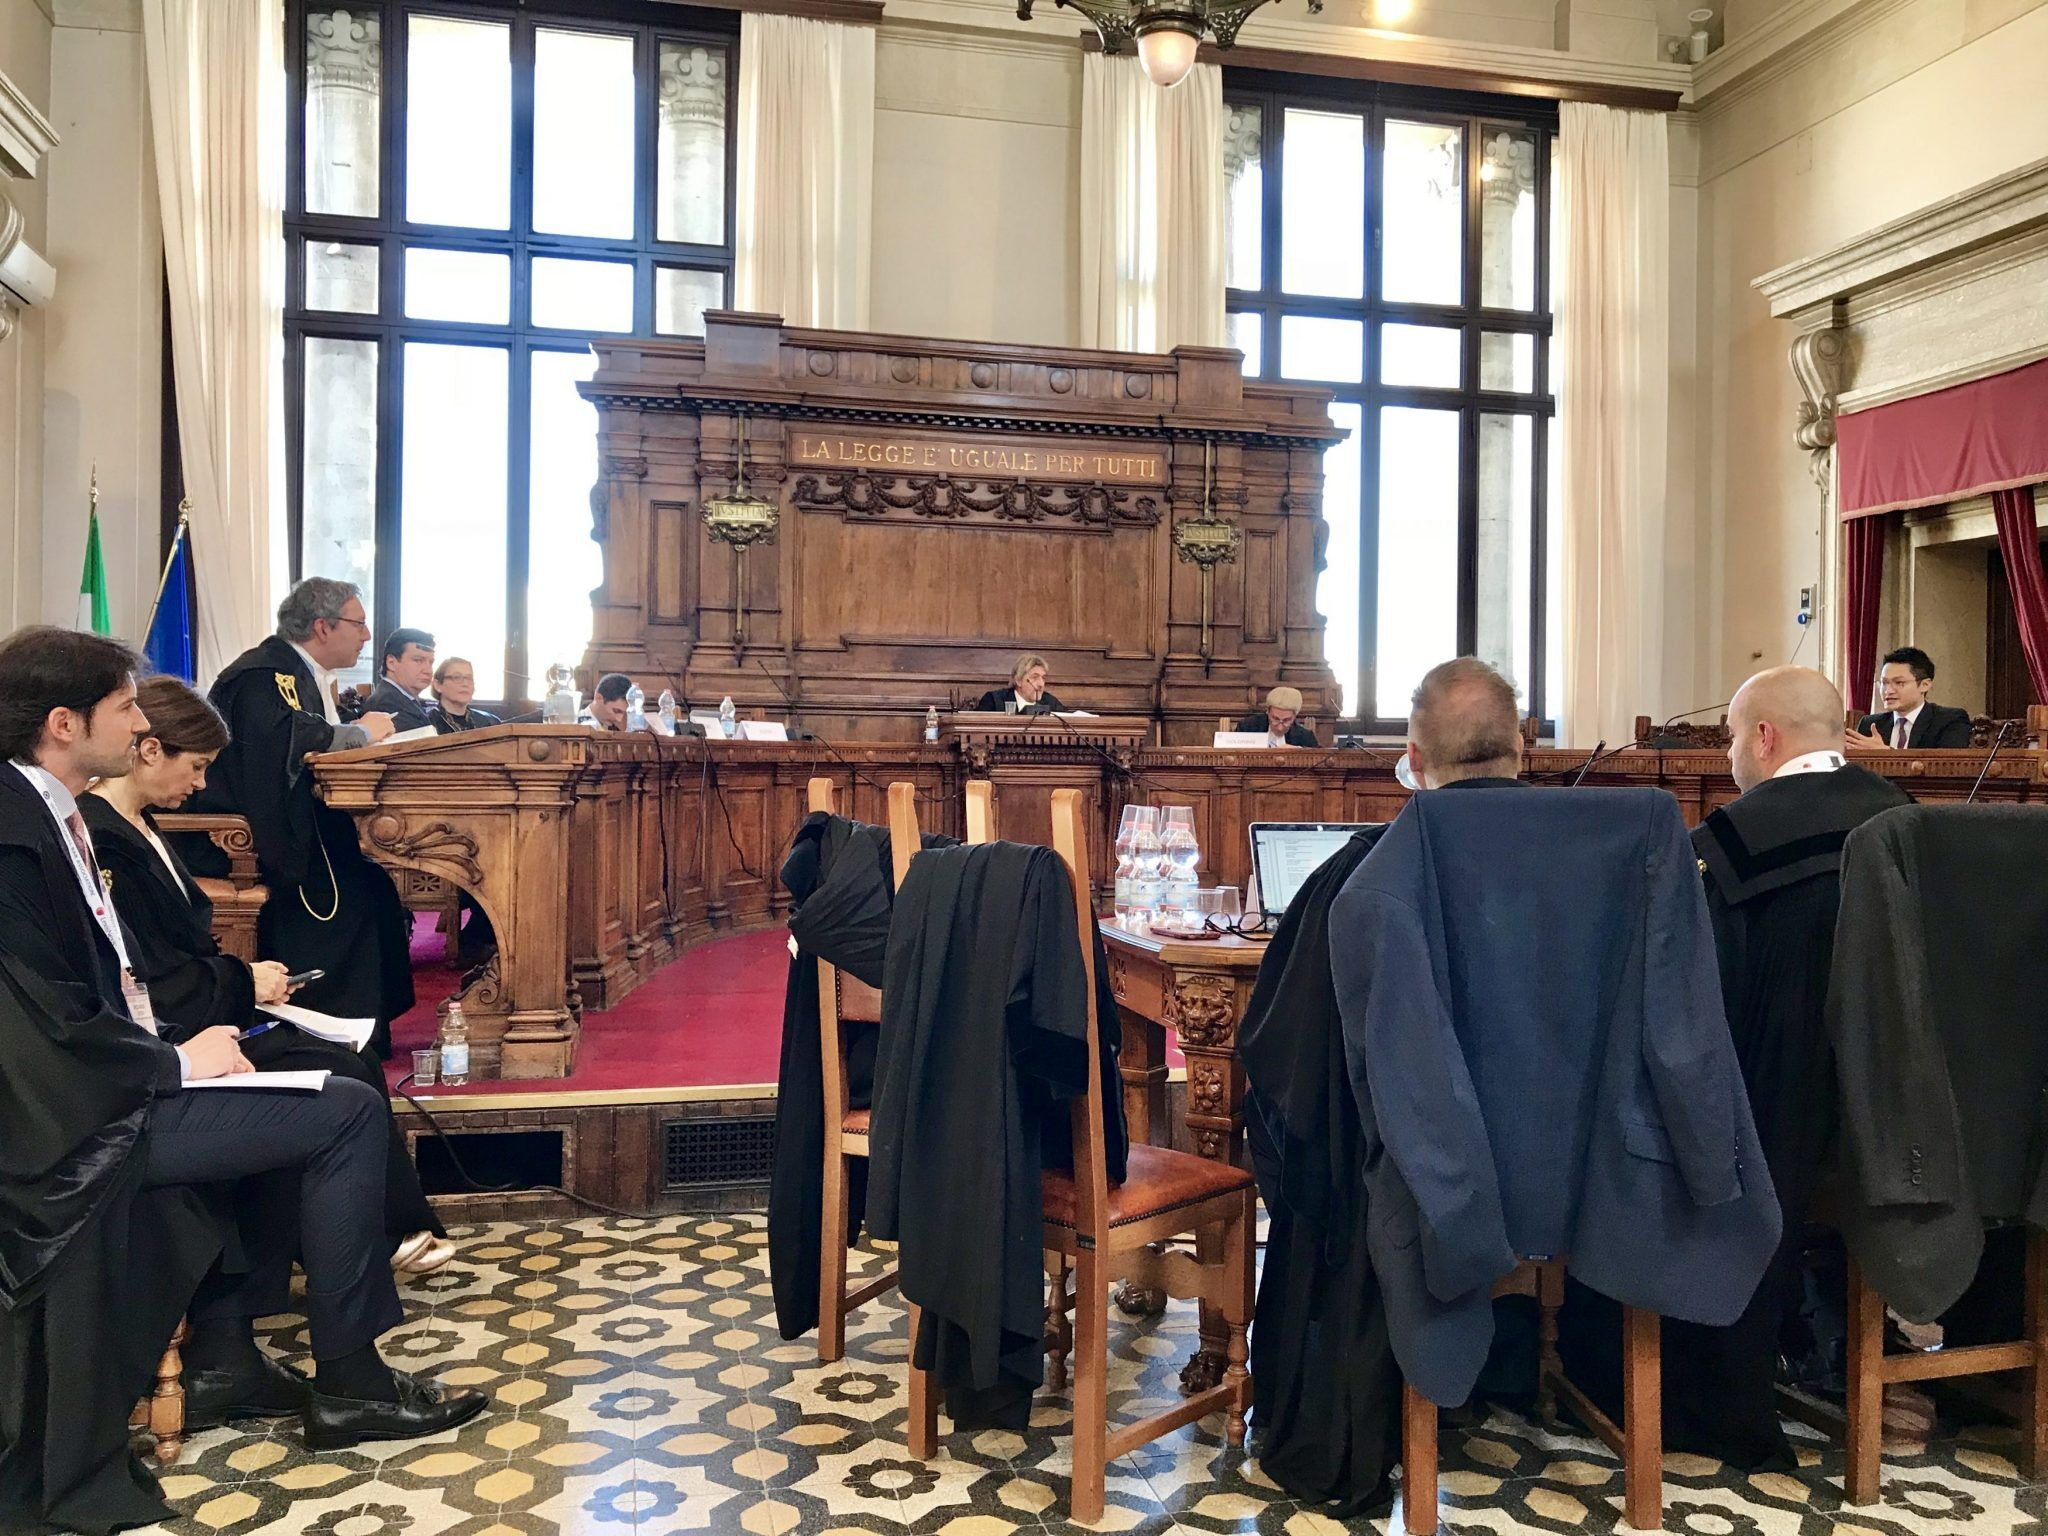 IBA Rome Mock Trial Court Room e1550541503305 - News & Events